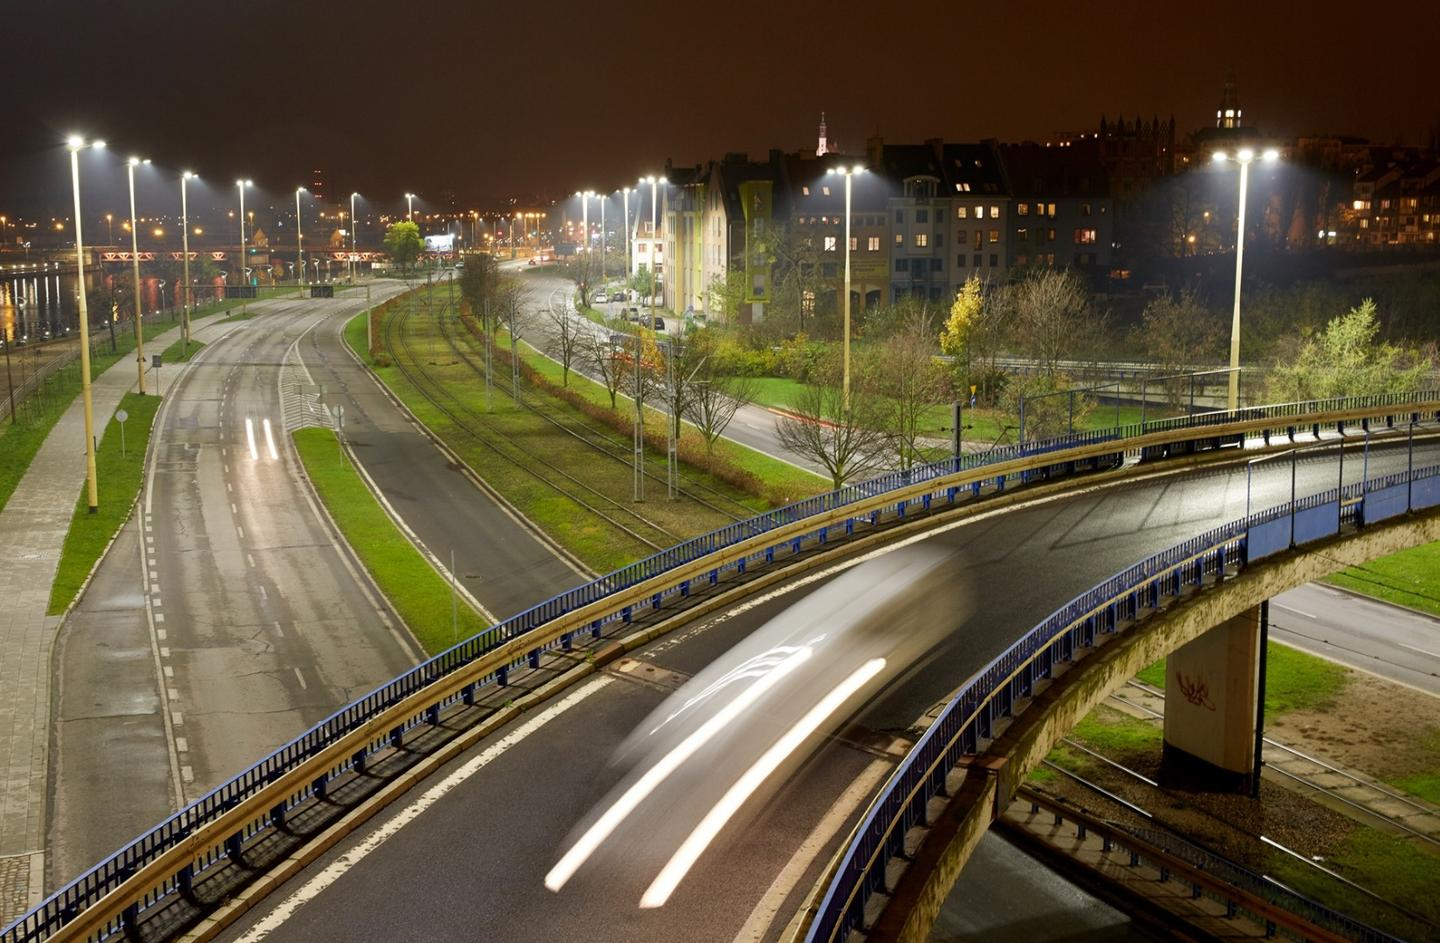 Individual street lights will each be fitted with one of Vodafone's M2M SIM cards